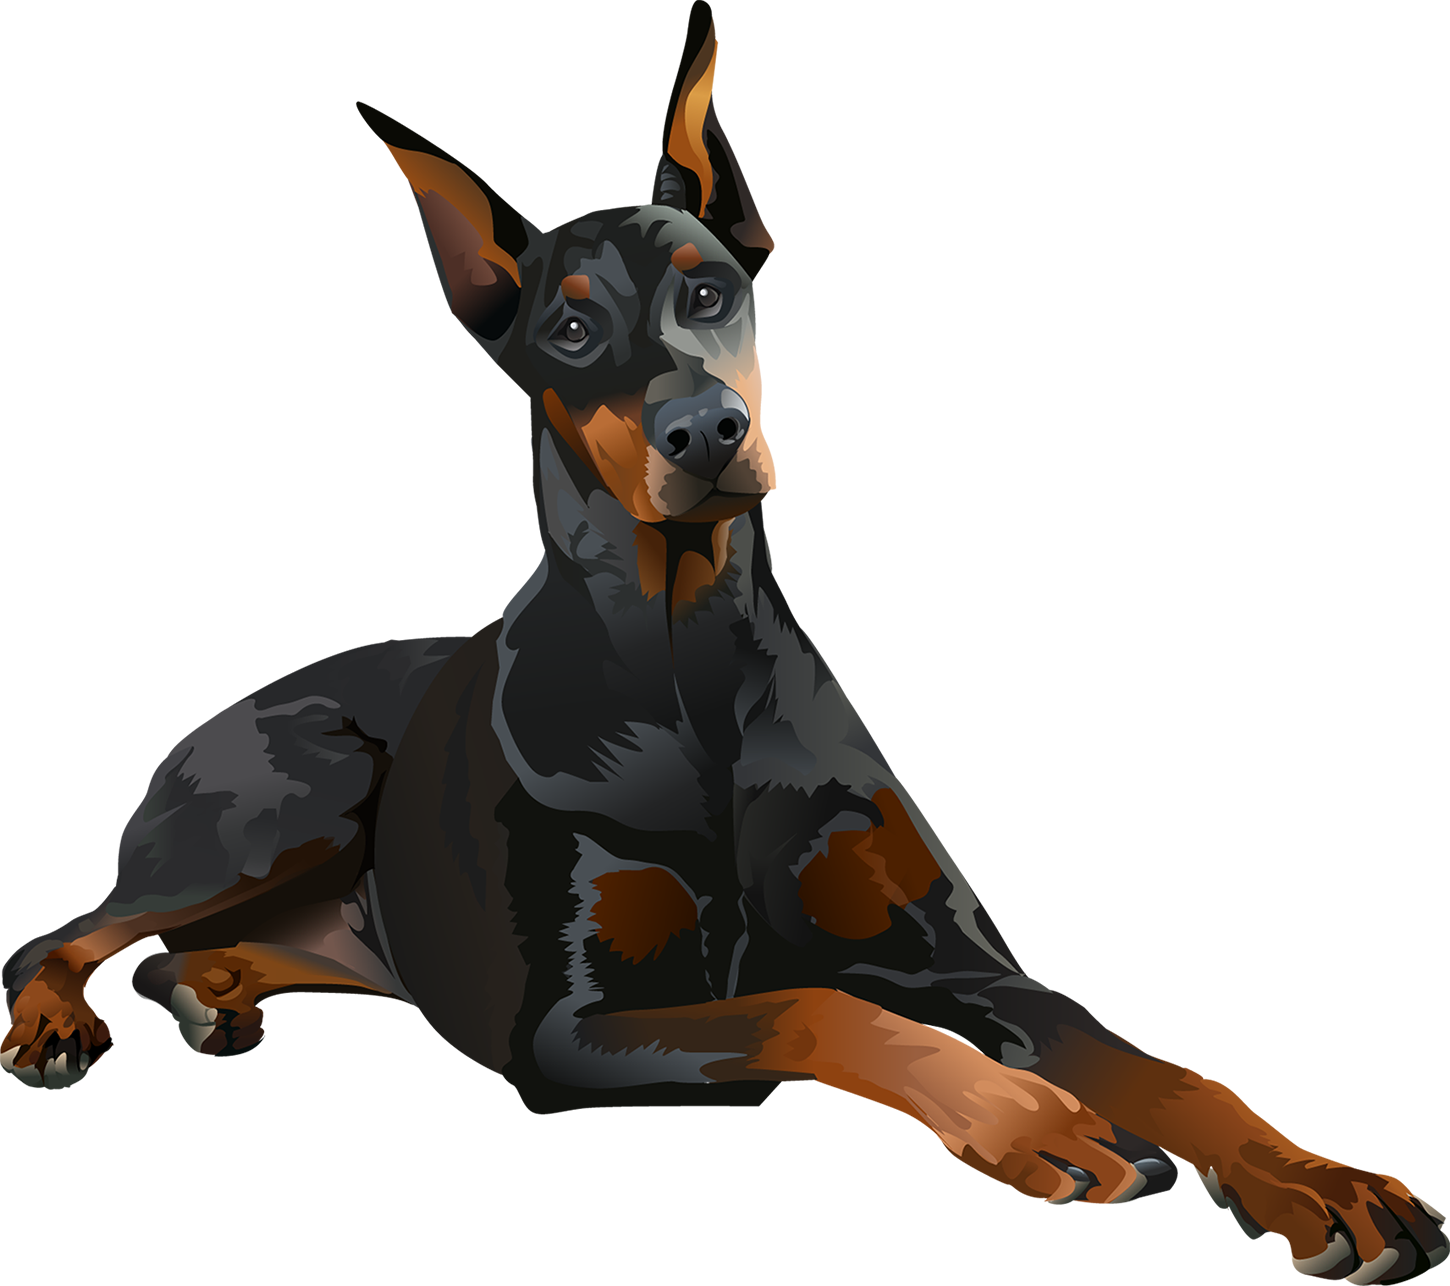 Doberman Pinscher T-Shirt Laying Down - Vibrant Vector